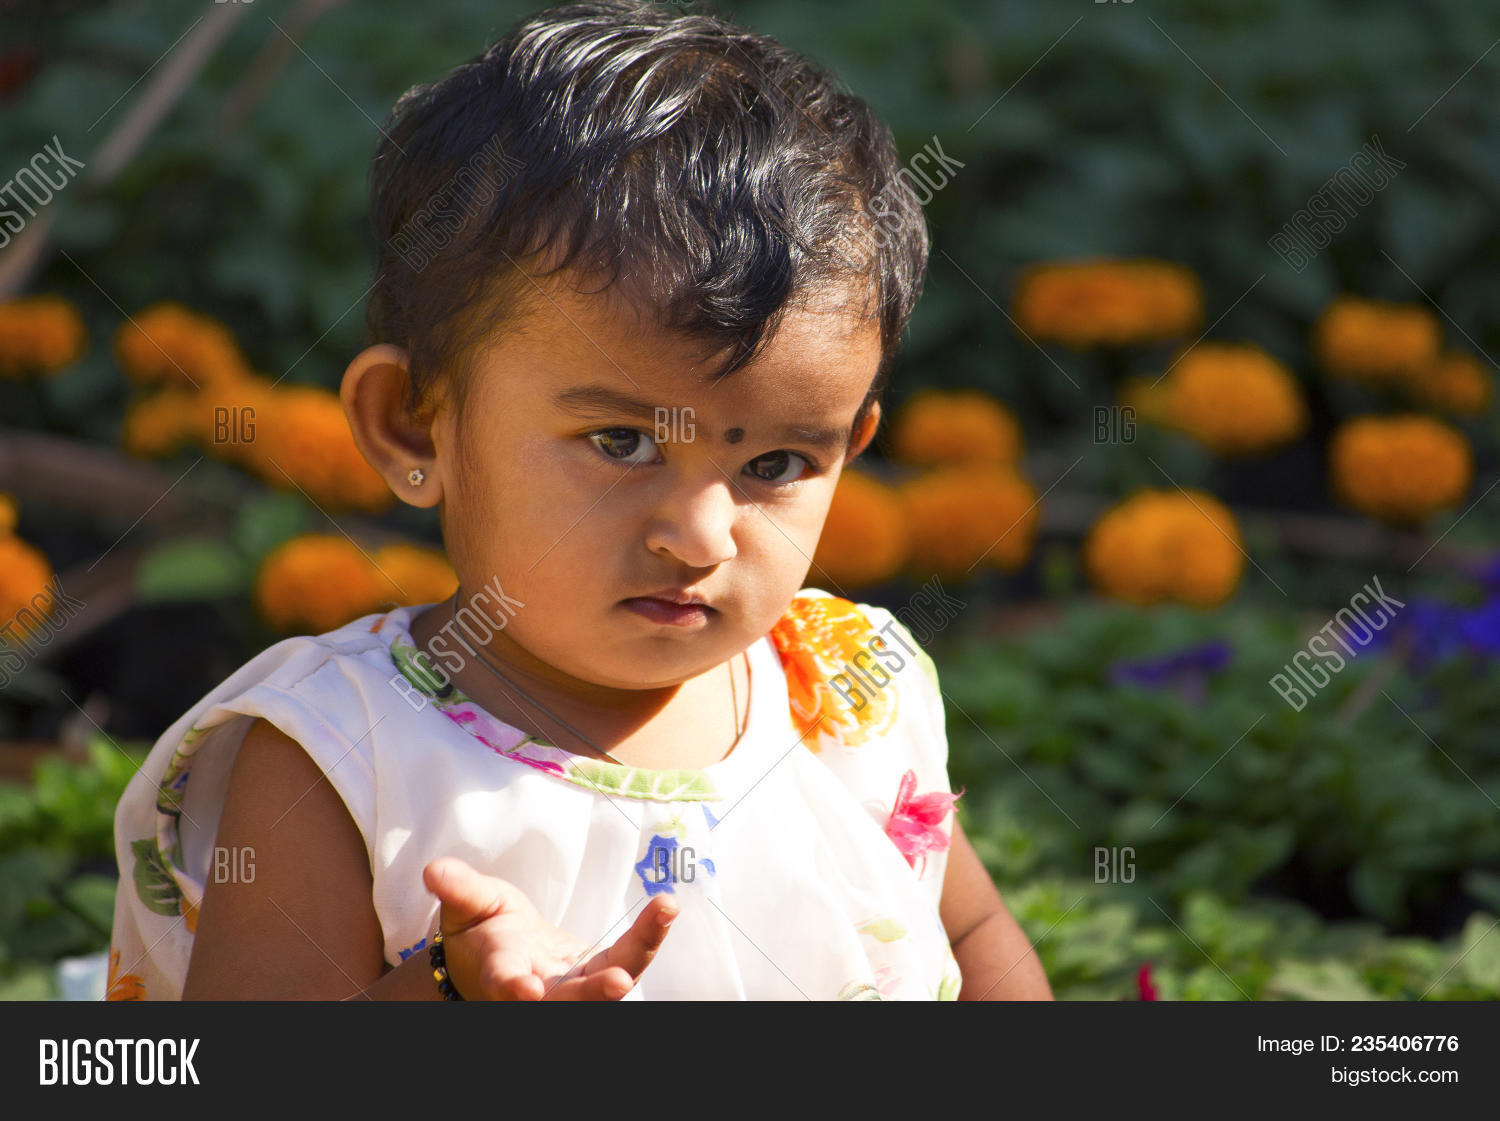 Indian Little Girl Image & Photo (Free Trial)   Bigstock